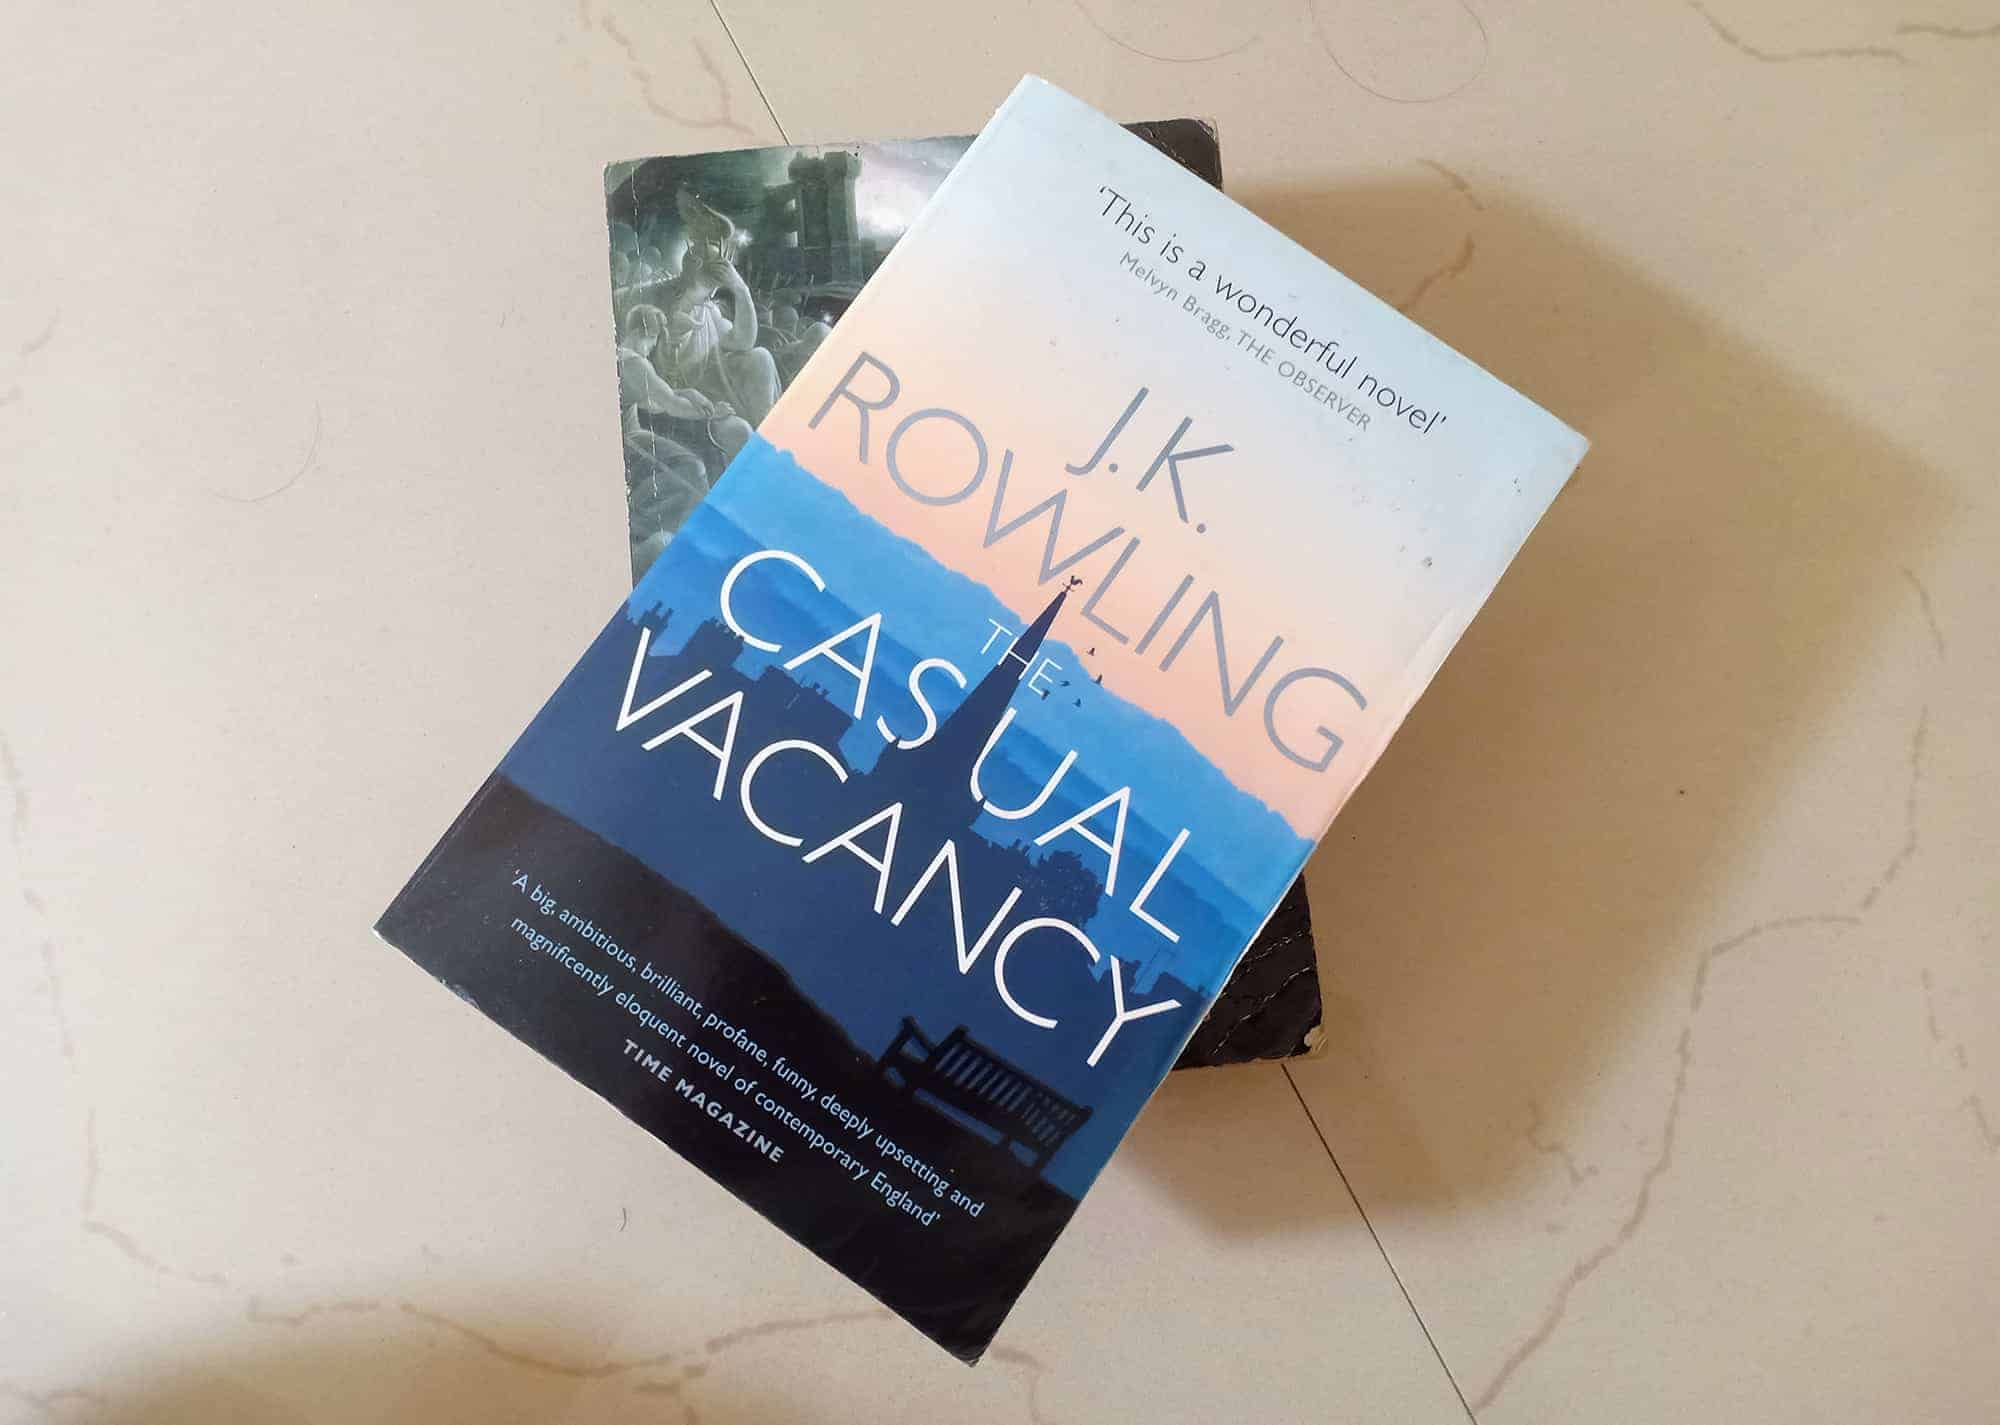 Read The Casual Vacancy For A Glimpse Into Muggle World Darkness